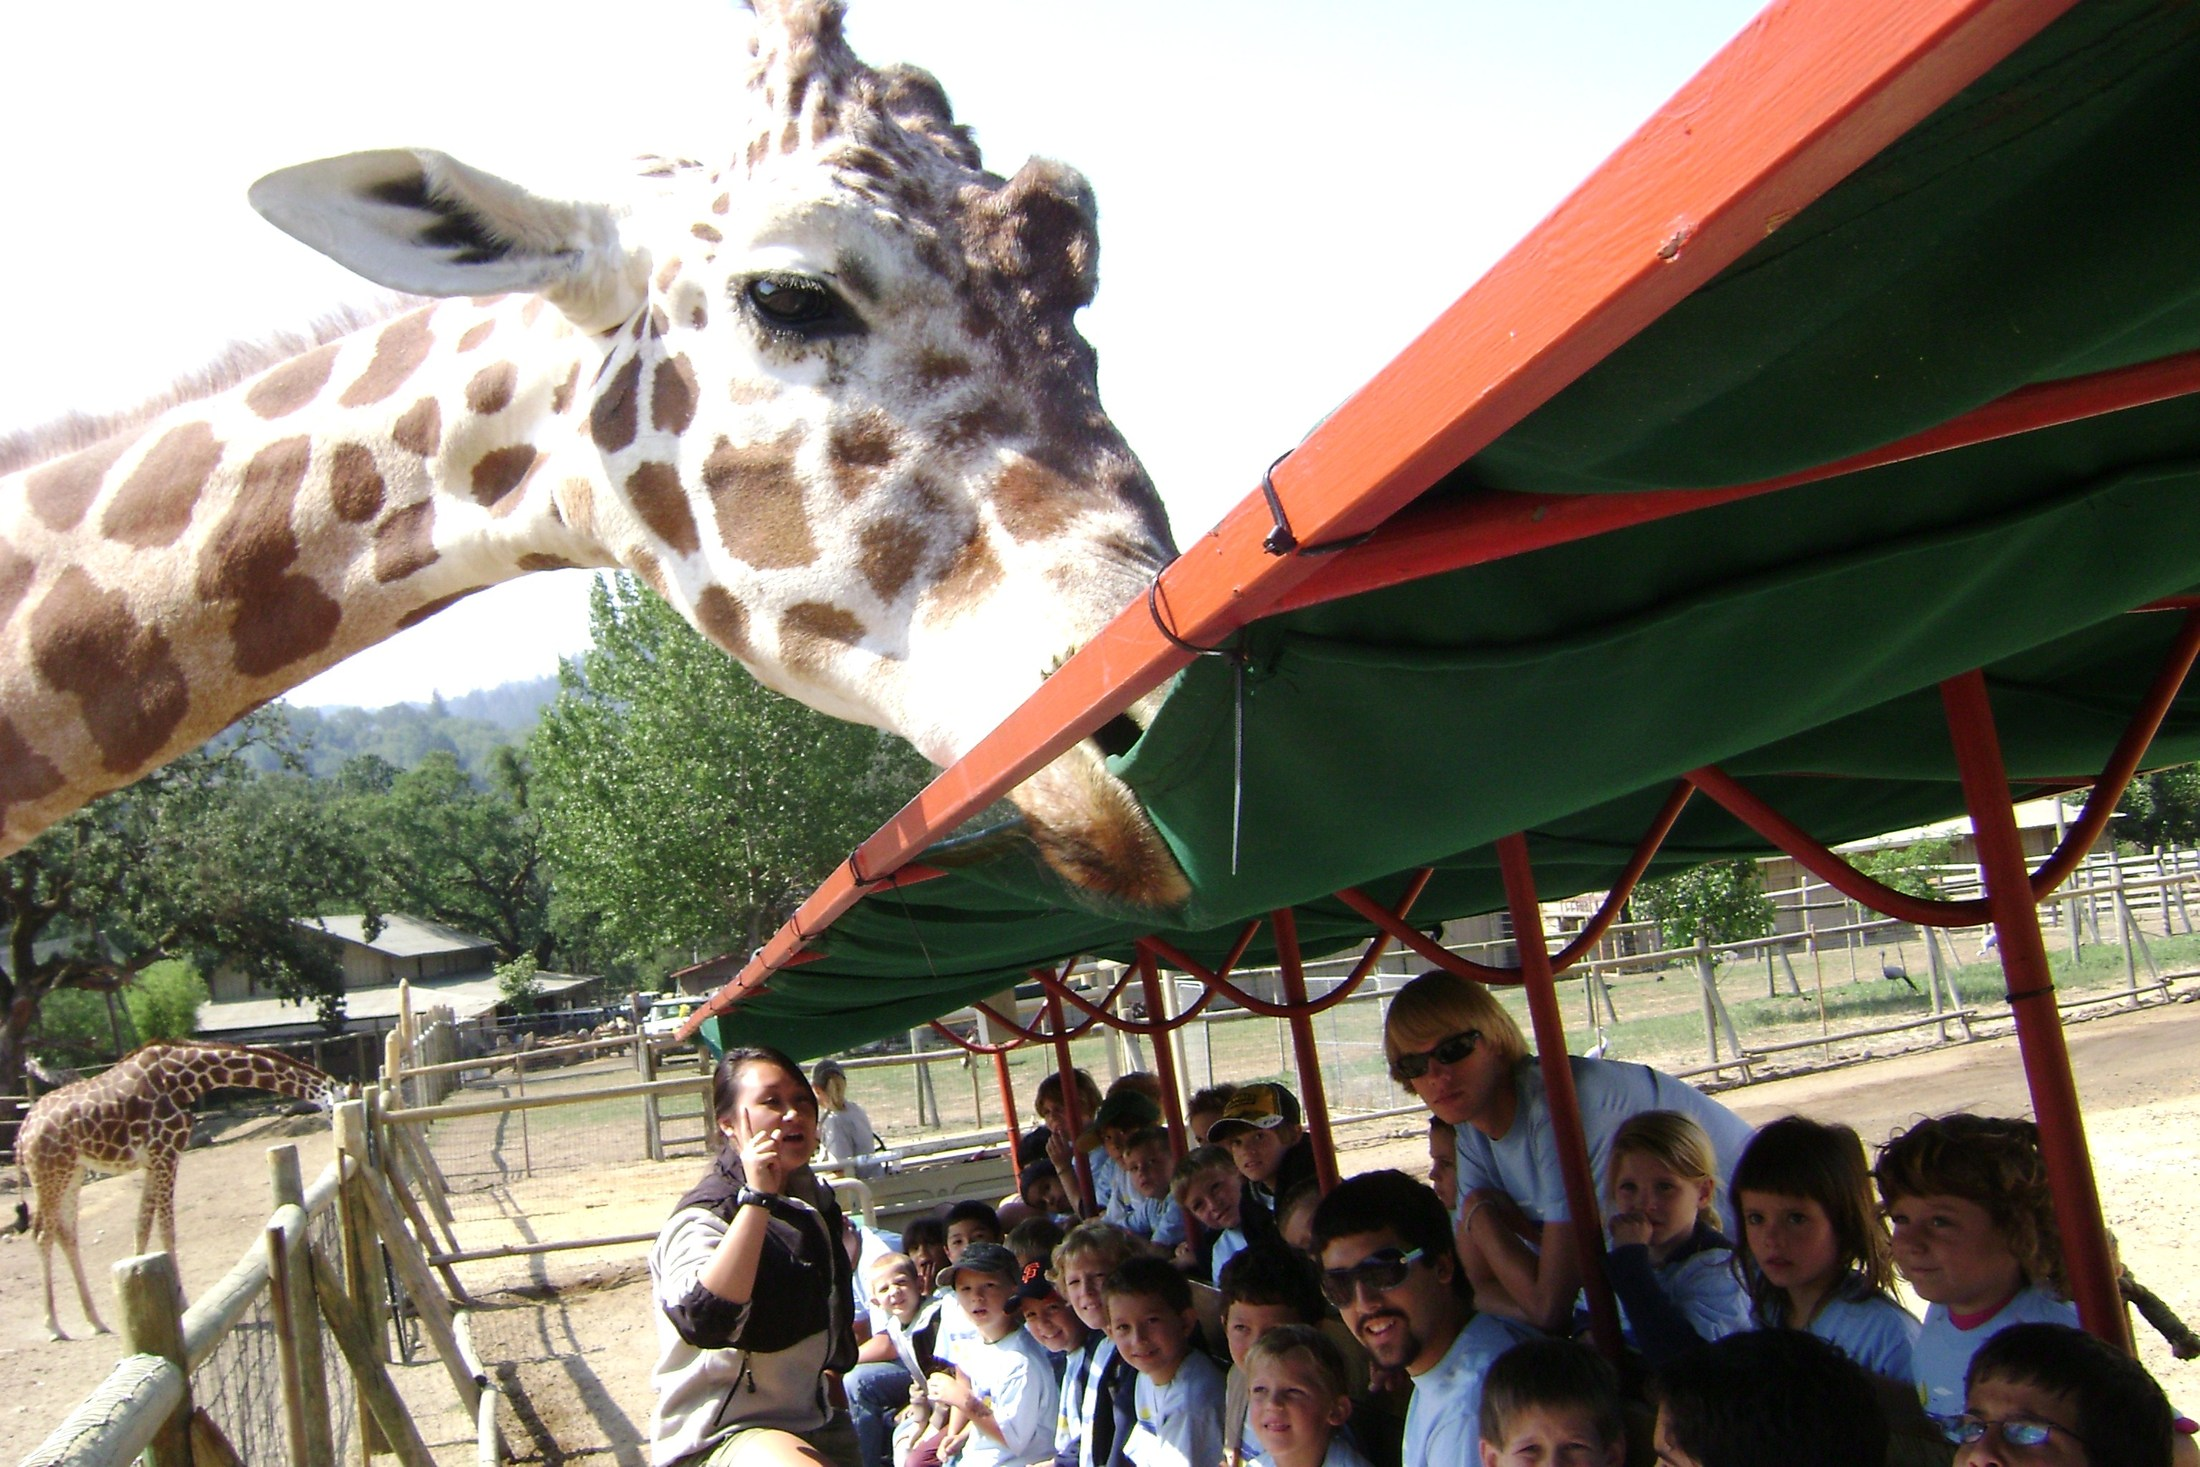 Students with giraffe